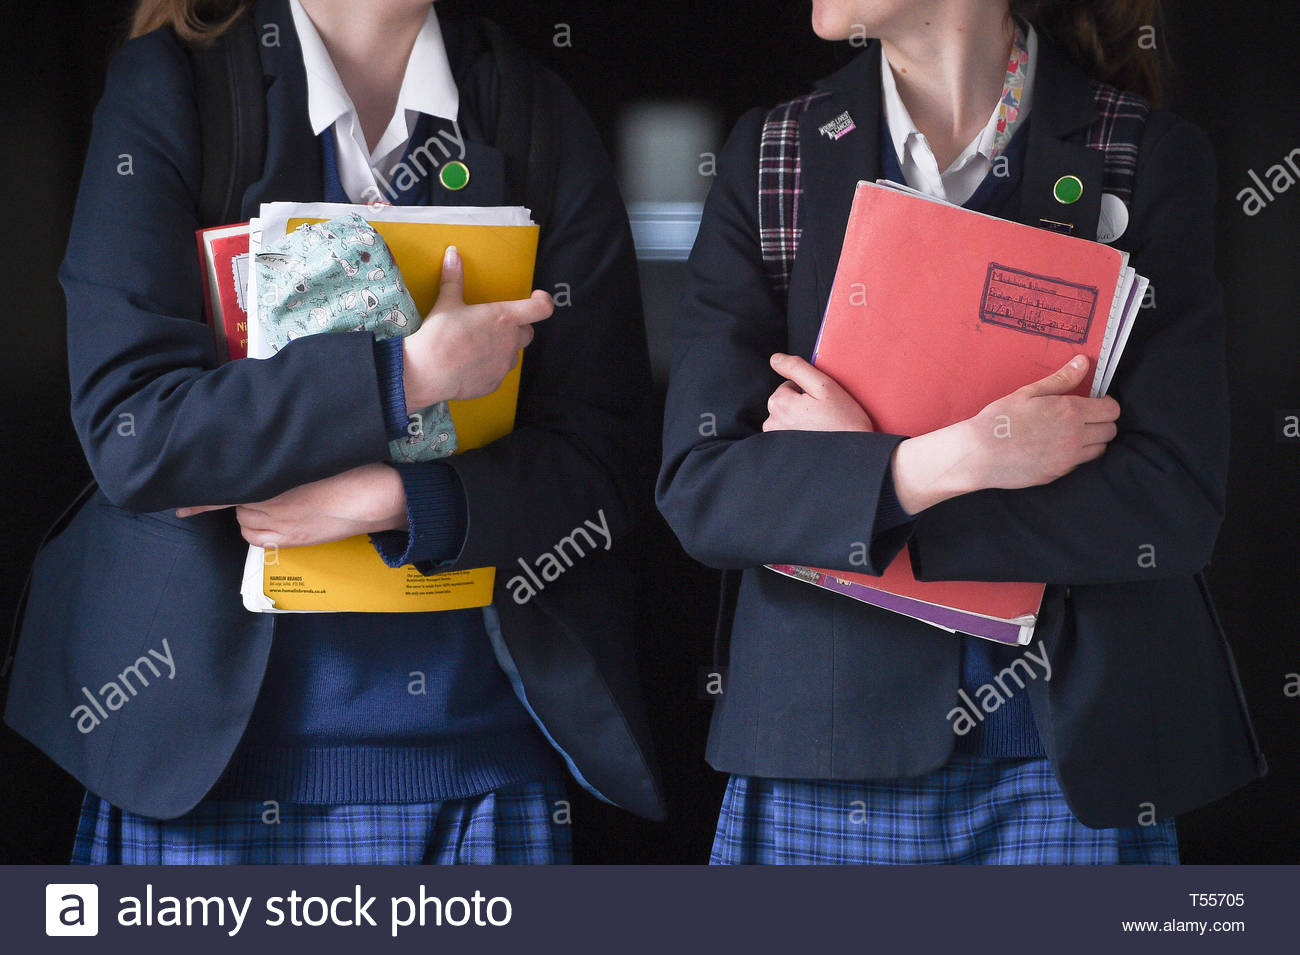 Embargoed to 0001 Monday April 22 File photo dated 12/09/18 of students walking along a corridor. MSPs have indicated the Scottish Government must provide greater clarity over the purpose of standardised assessments in schools. - Stock Image